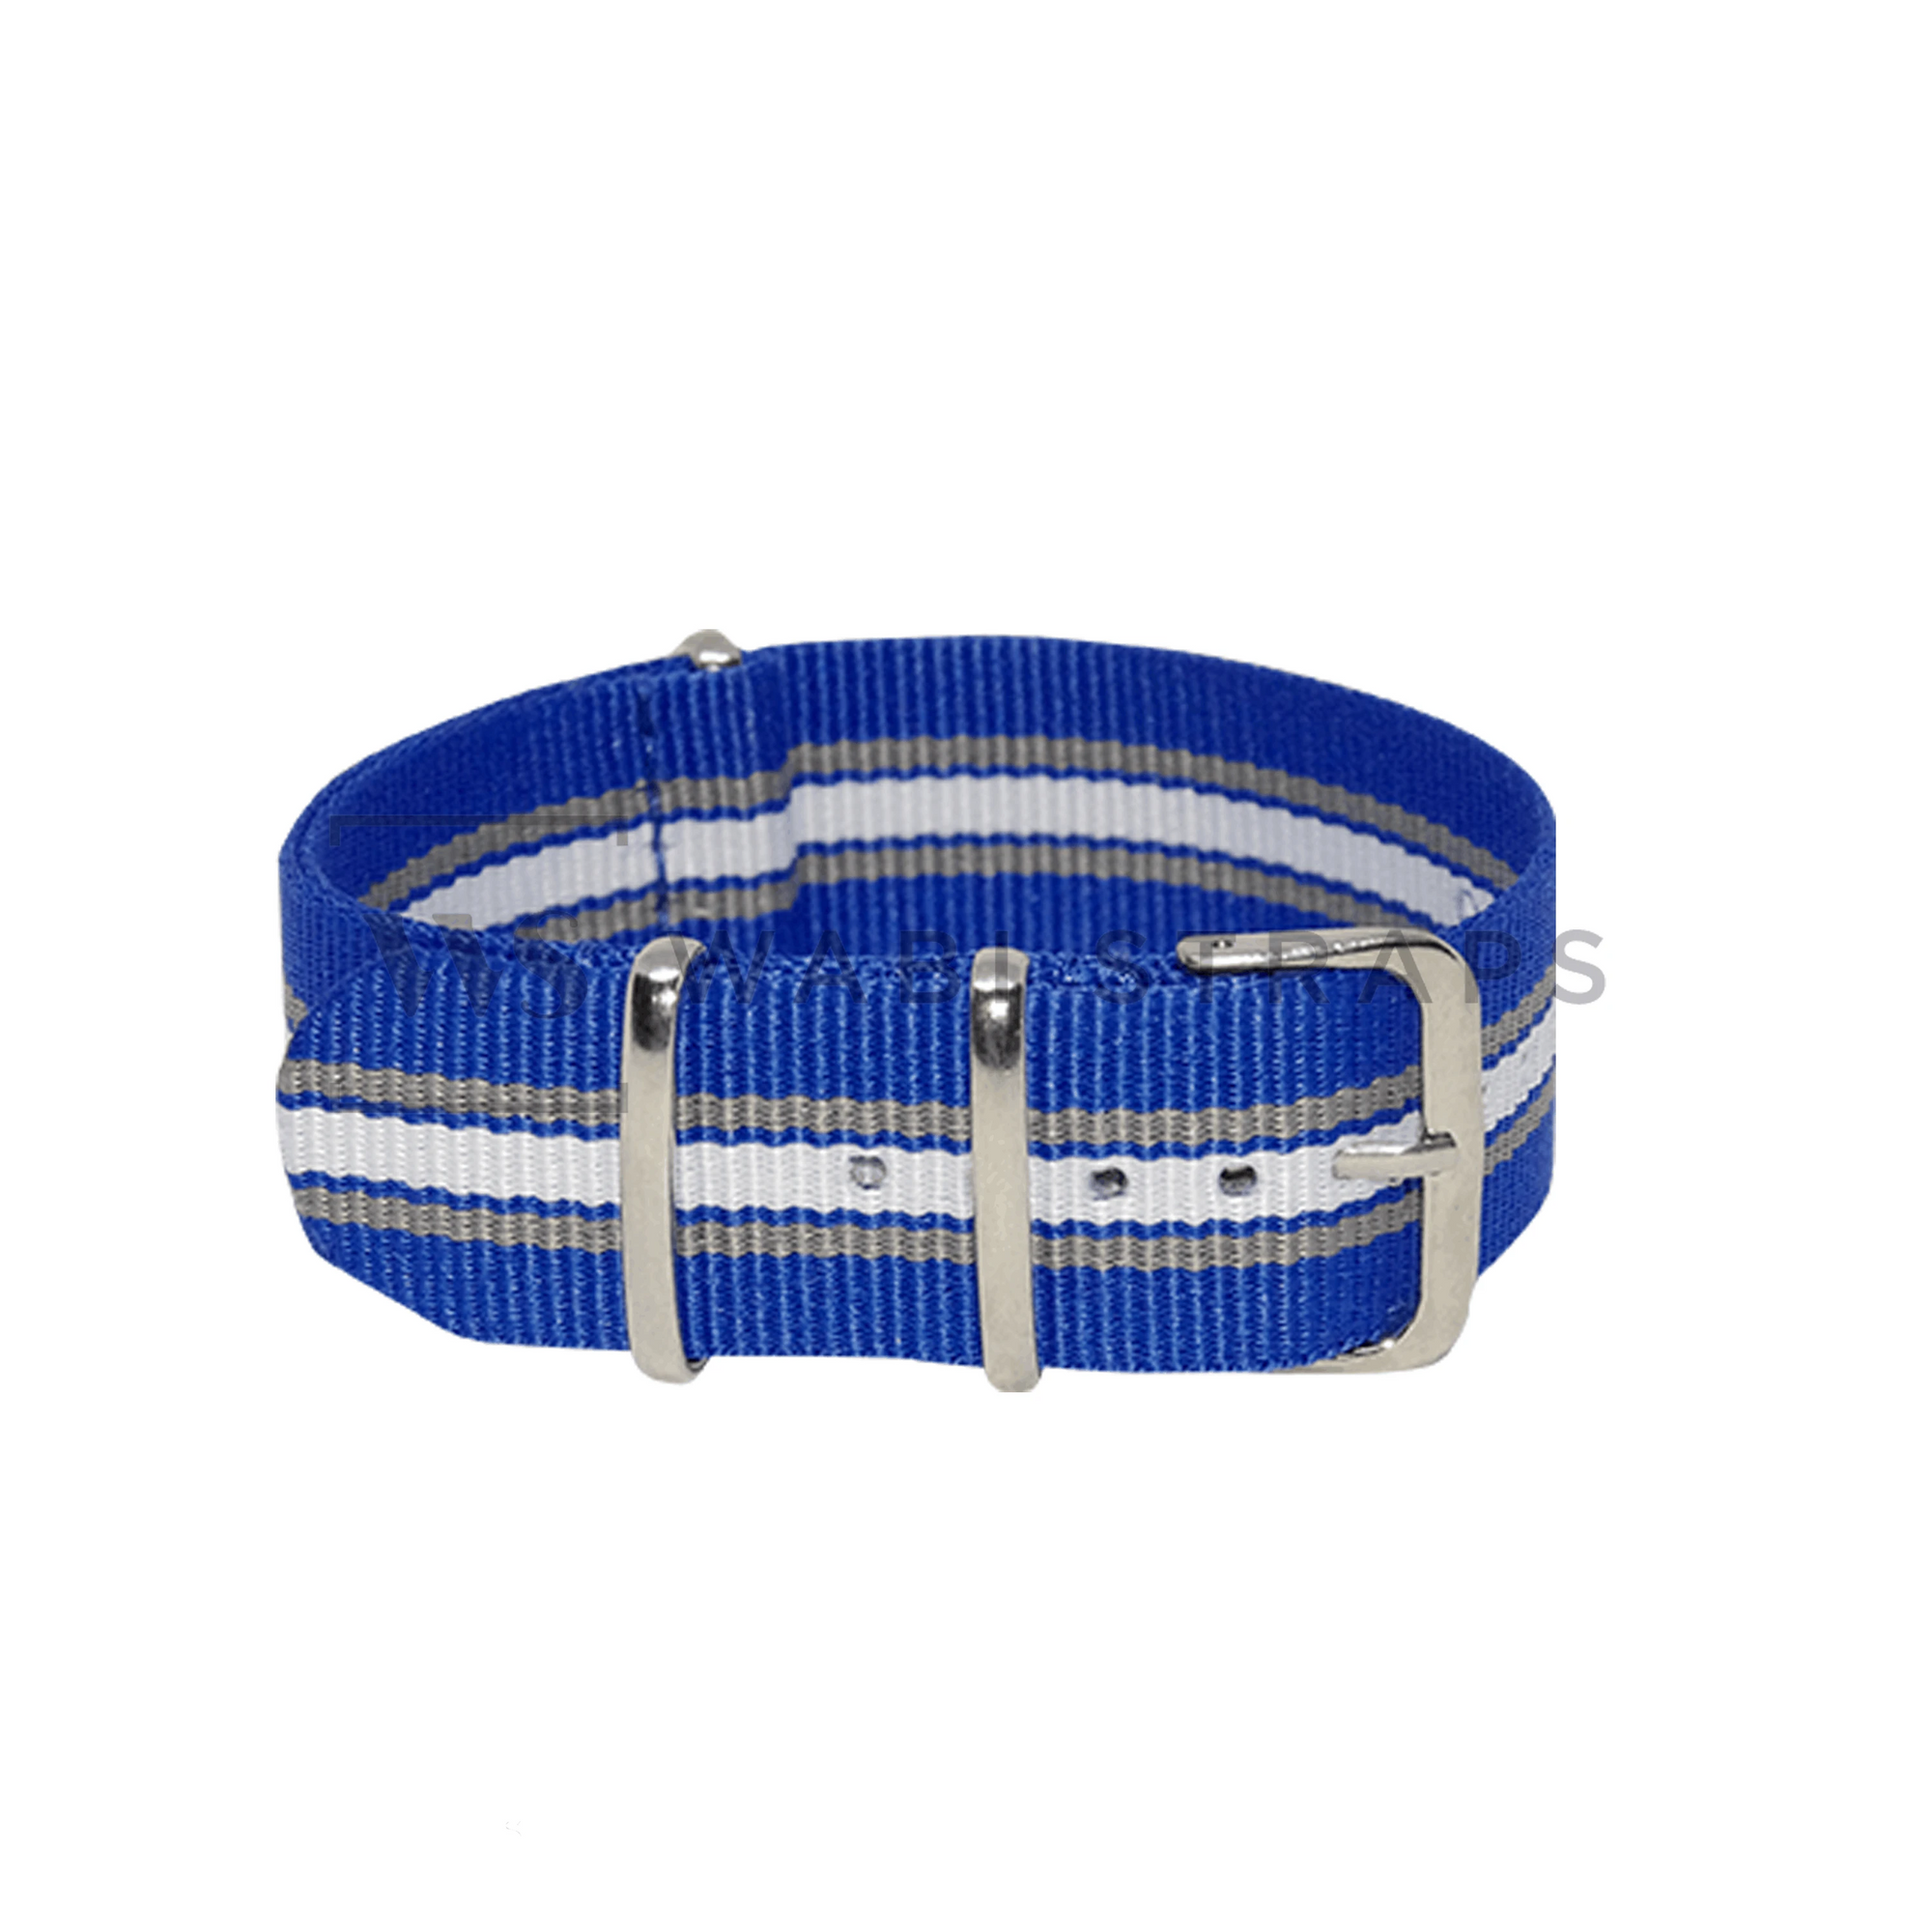 Blue, Grey & White Regimental NATO Strap Round